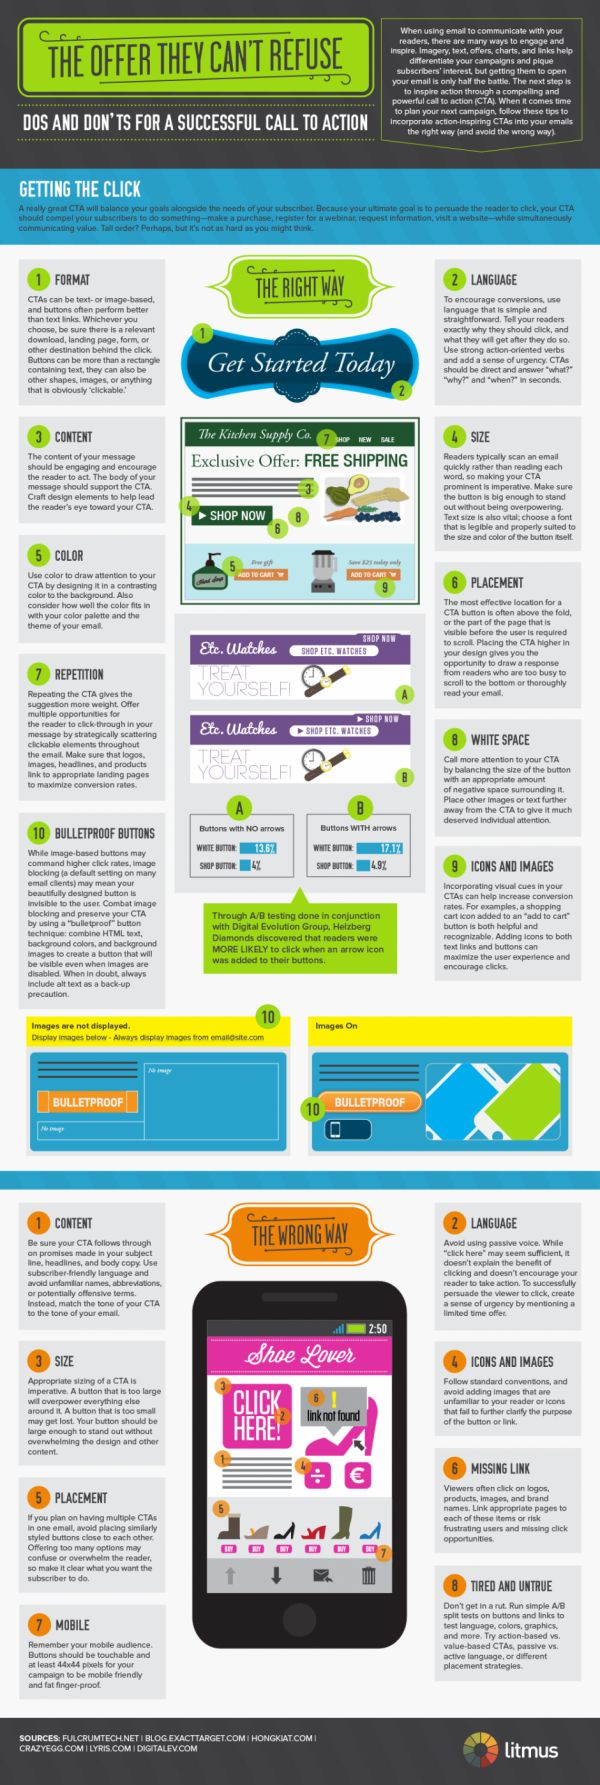 #infographic #email #marketing